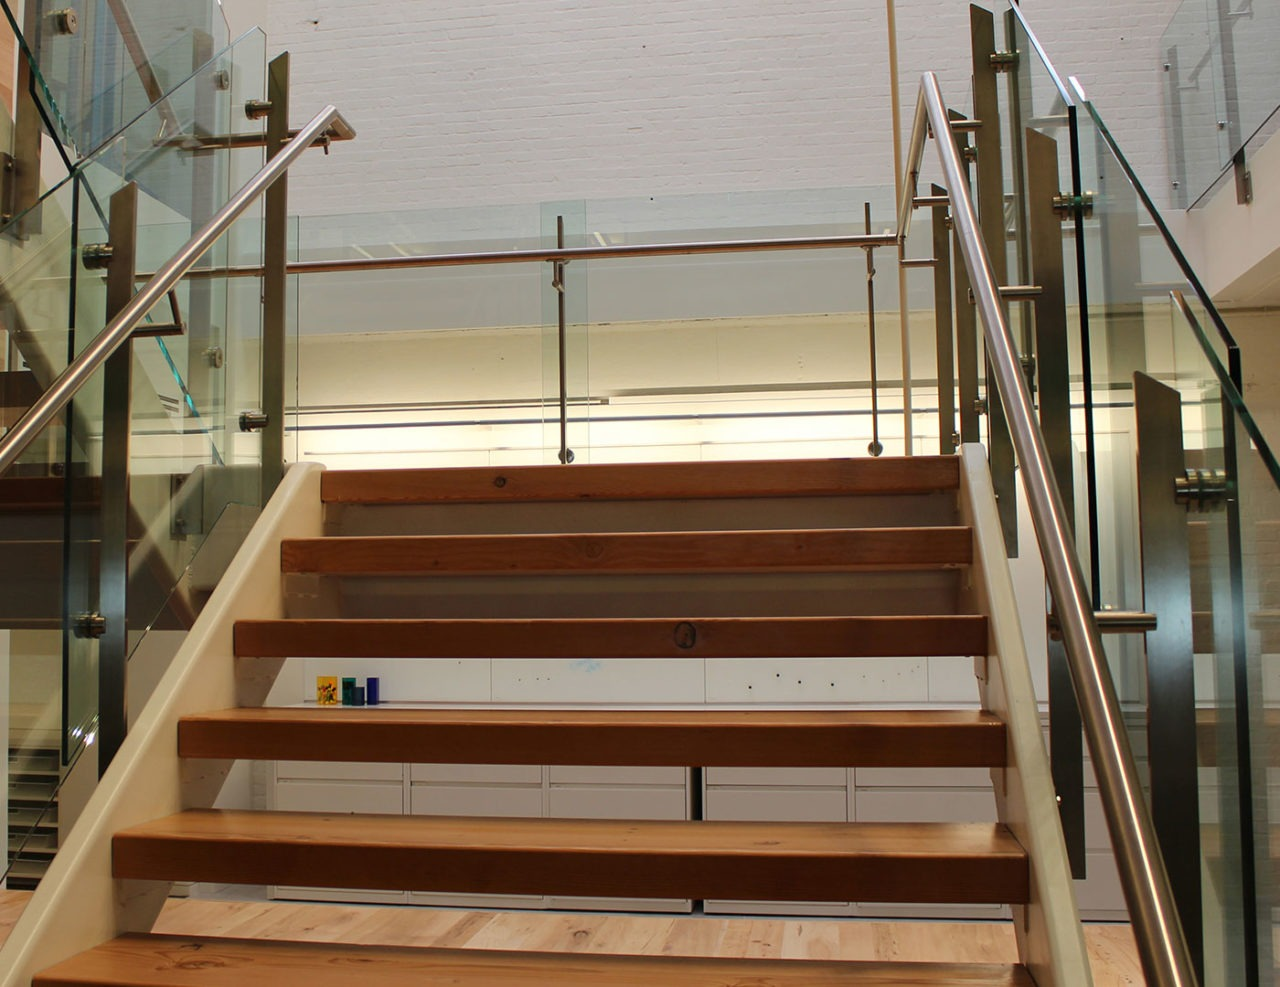 Post Mounted Stainless Steel Handrails Are Used Throughout The Summit Railing  System